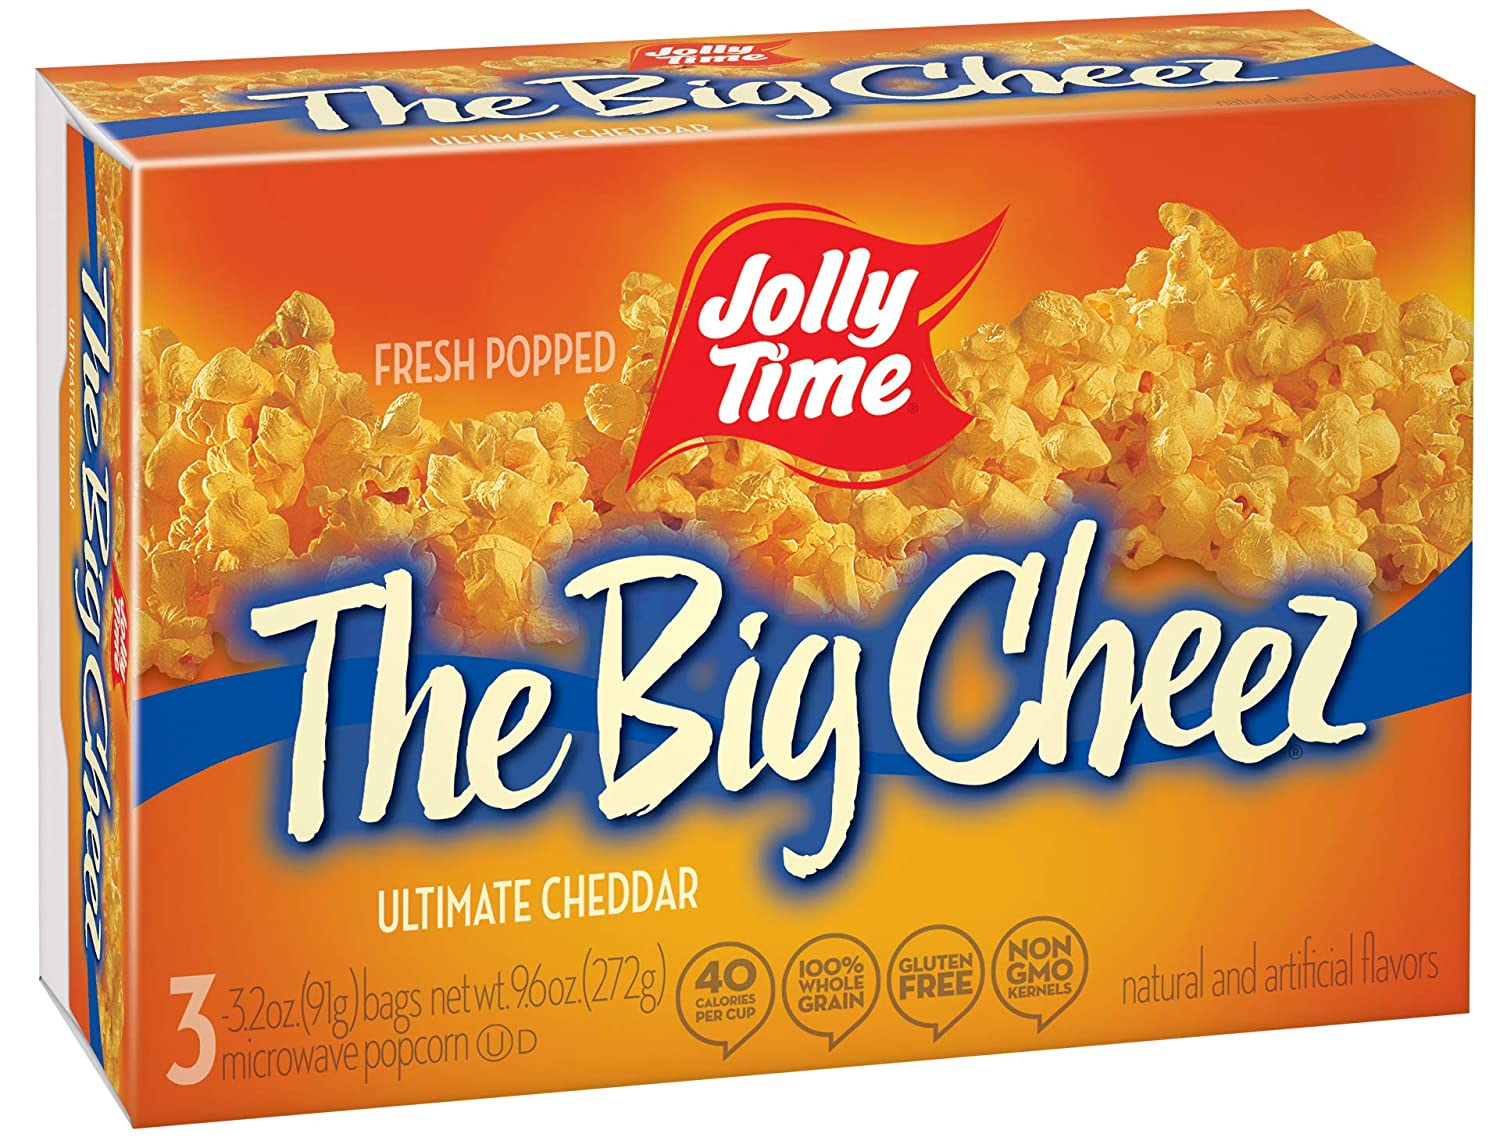 Jolly Time The Big Cheez Cheddar 3 Cou Popcorn Microwave Shipping included Cheese service